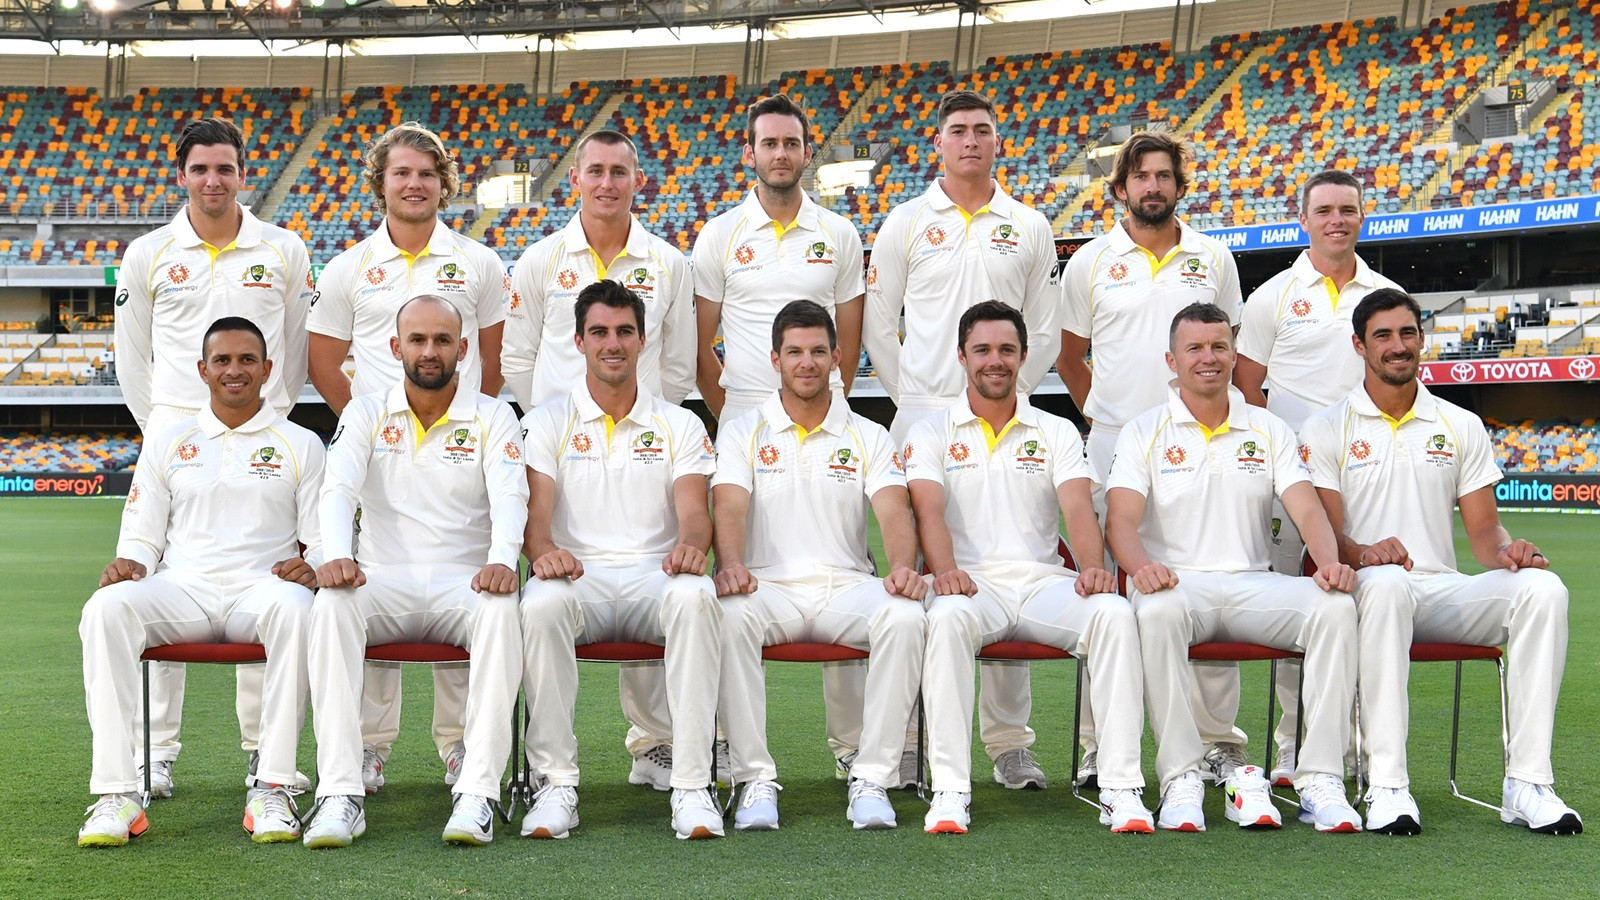 AUS v SL 2019: Australia confirms new vice-captains ahead of Sri Lanka Test series